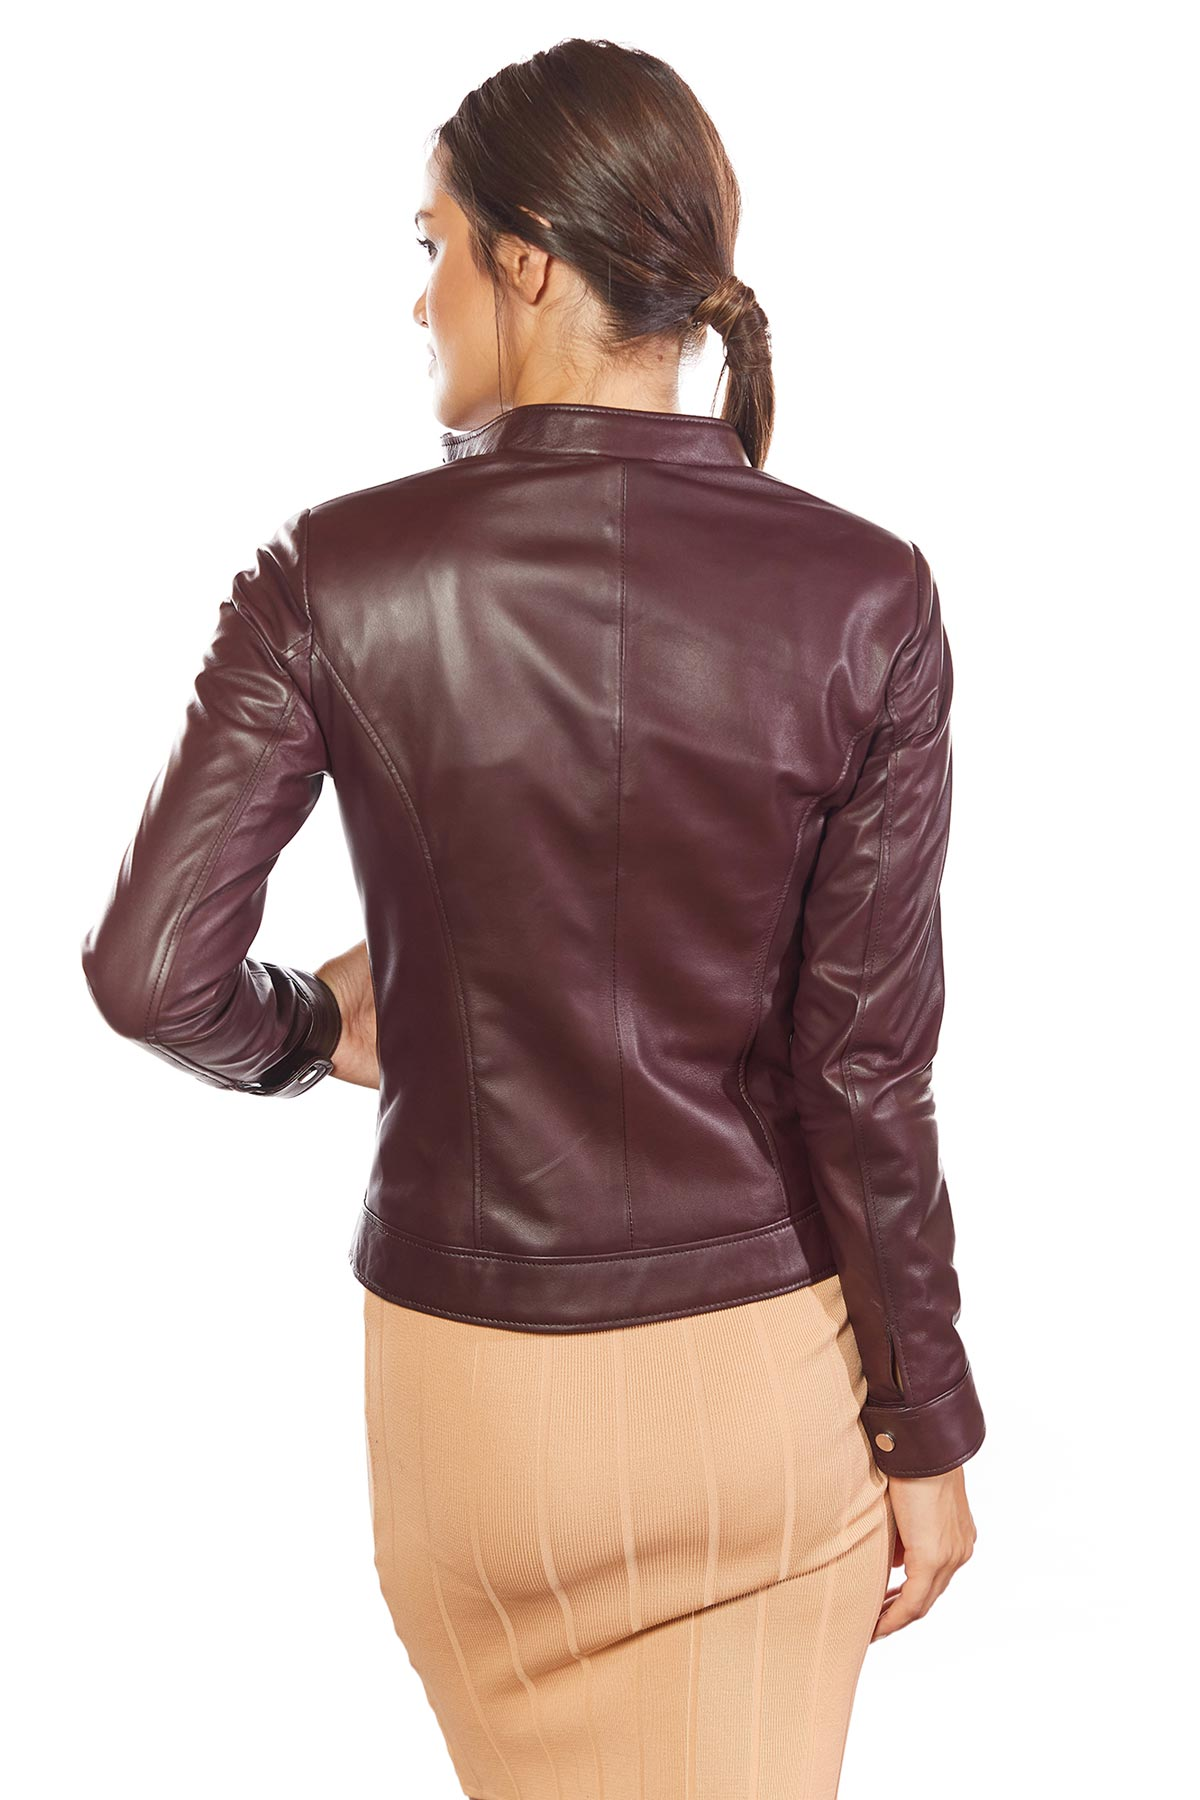 real leather jacket size 14